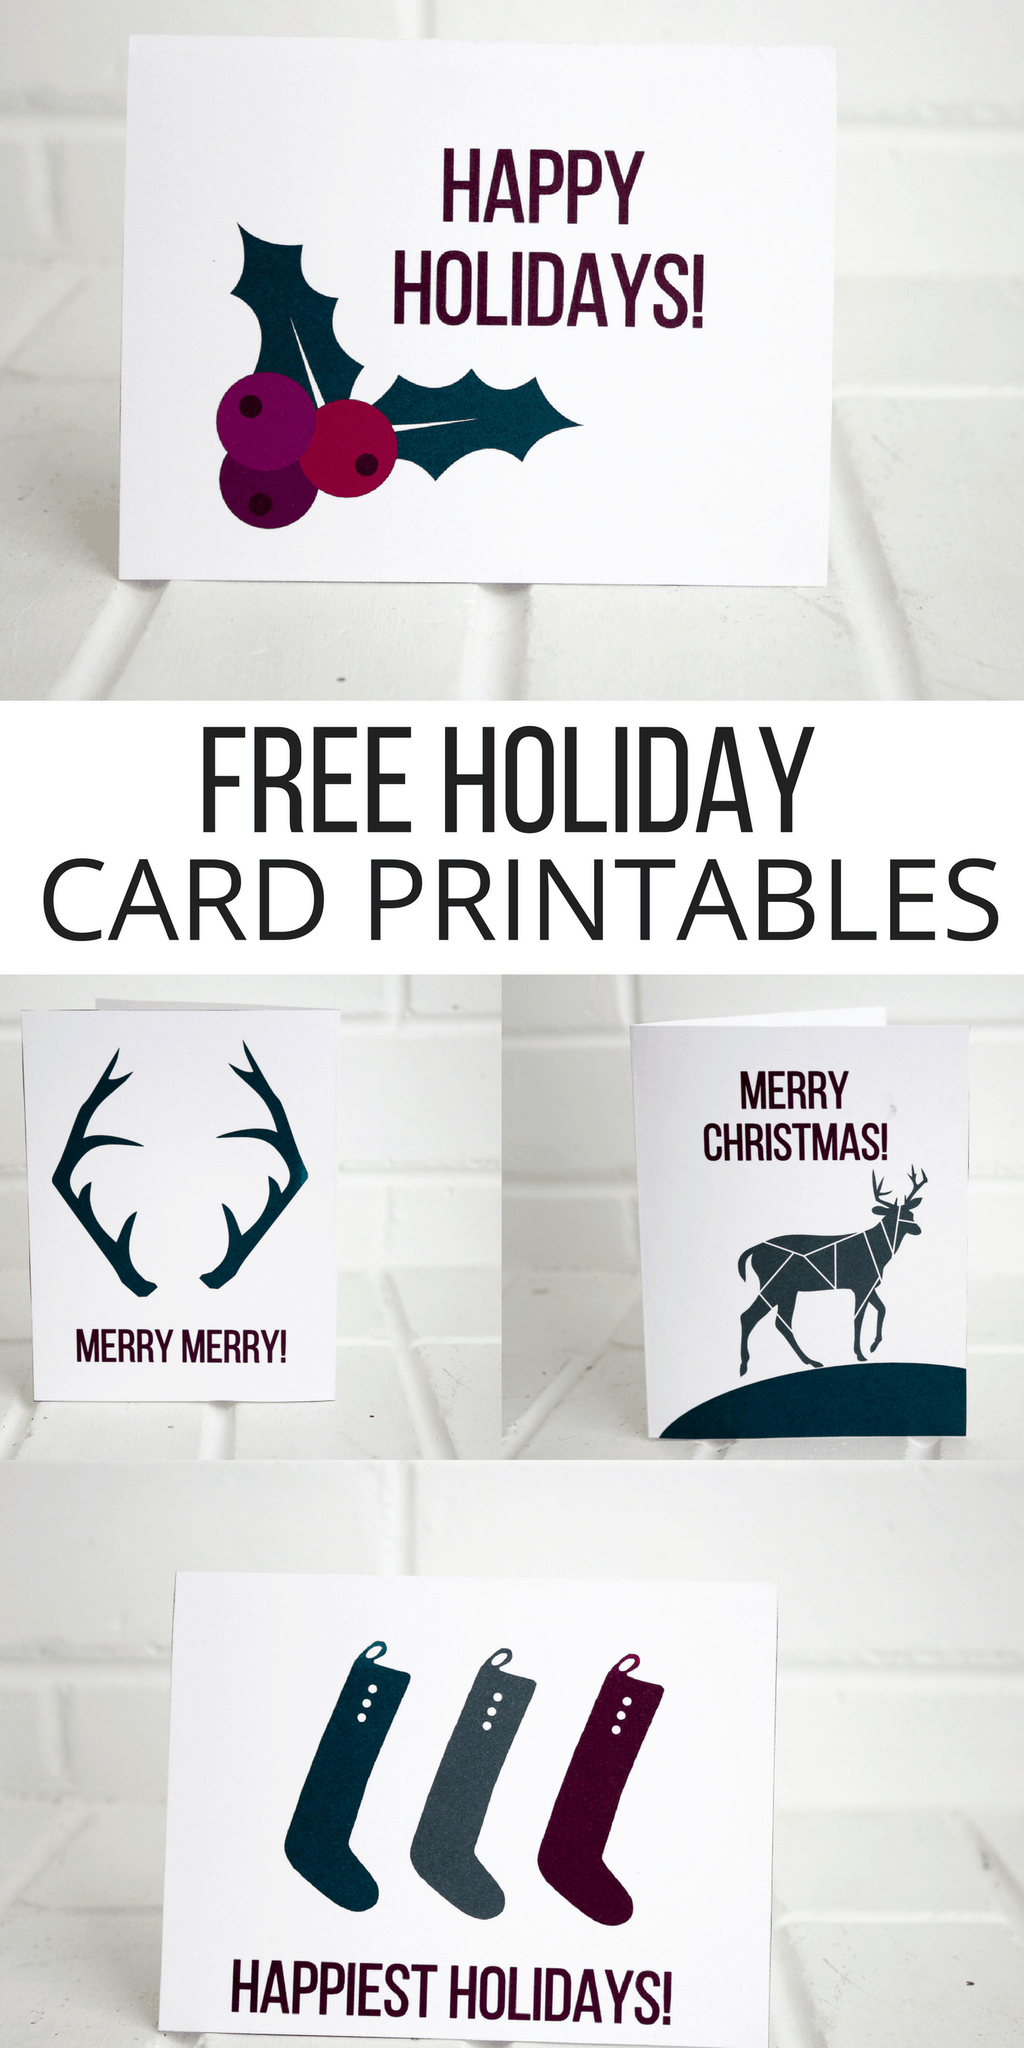 Holiday greeting cards are not gone! Sending a sweet and thoughtful gift to those you care about is sure to make their day. Print these cards out for free!